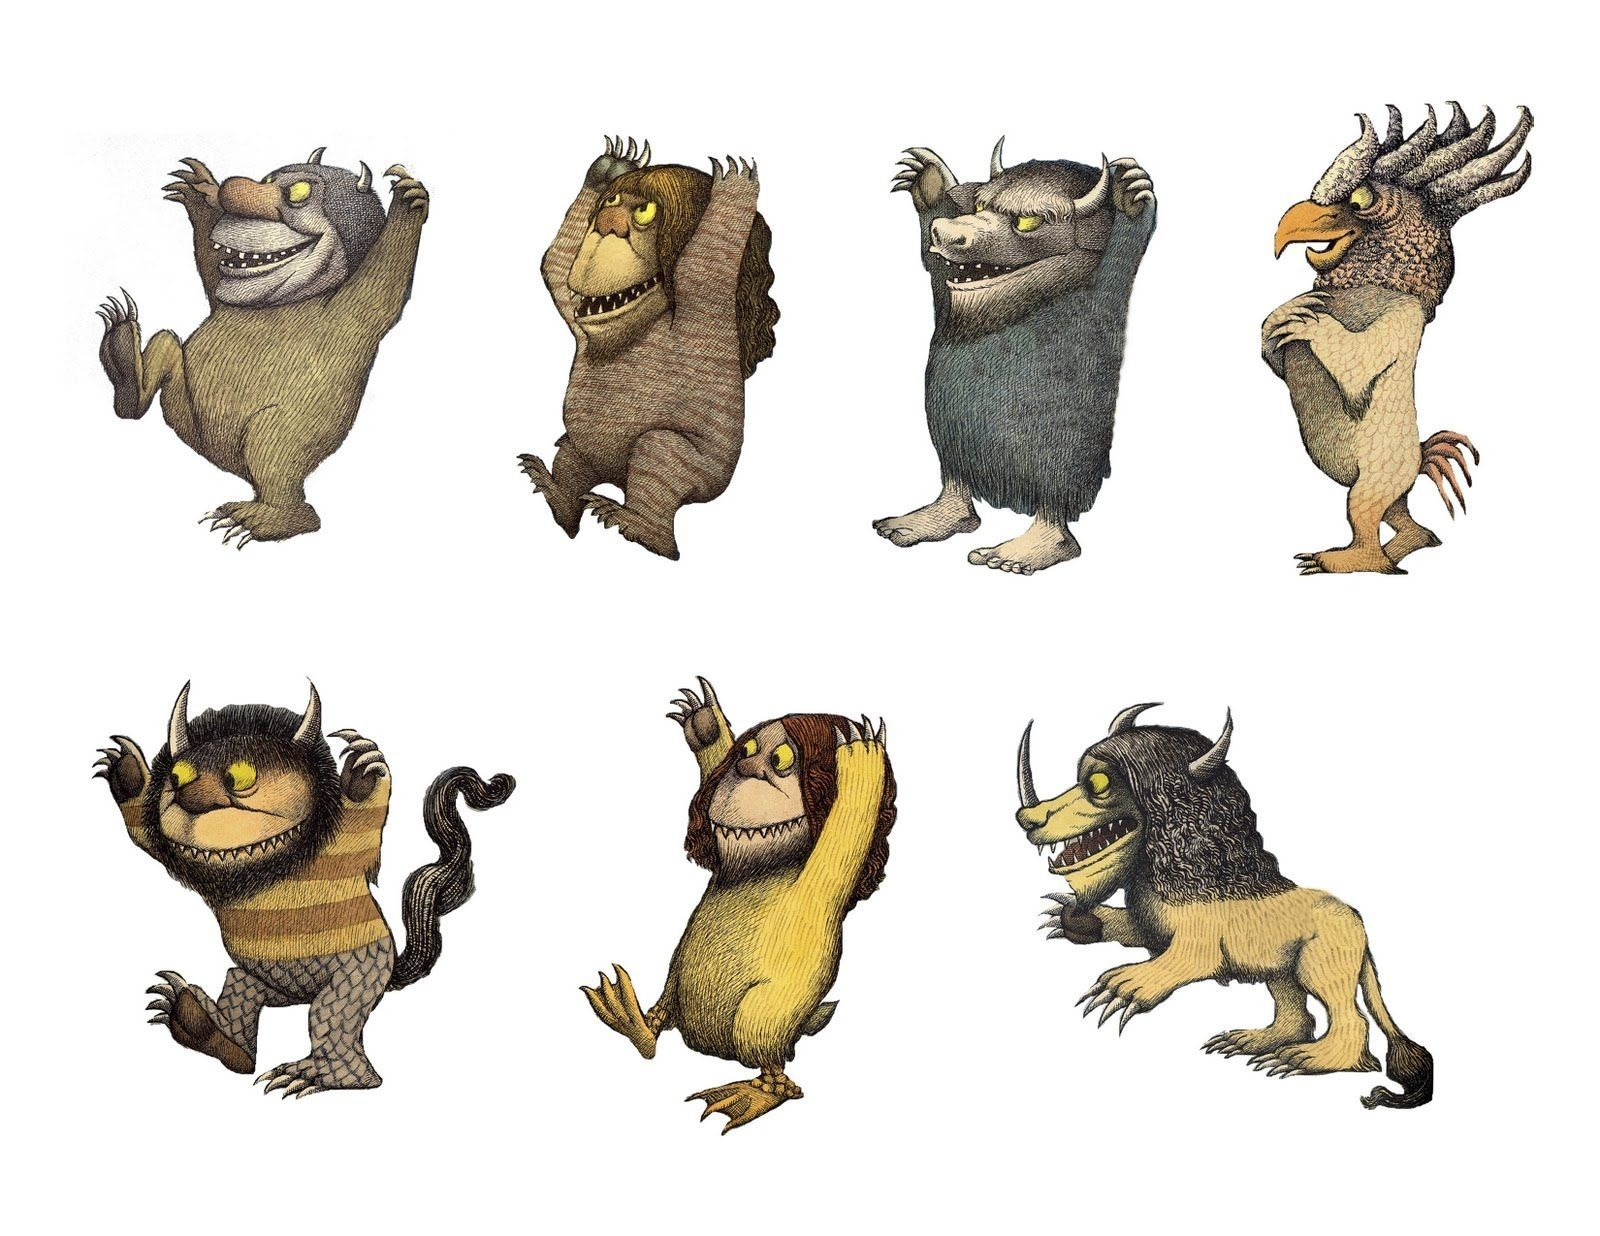 Image Result For Where The Wild Things Are Free Printables | Lylas - Where The Wild Things Are Free Printables